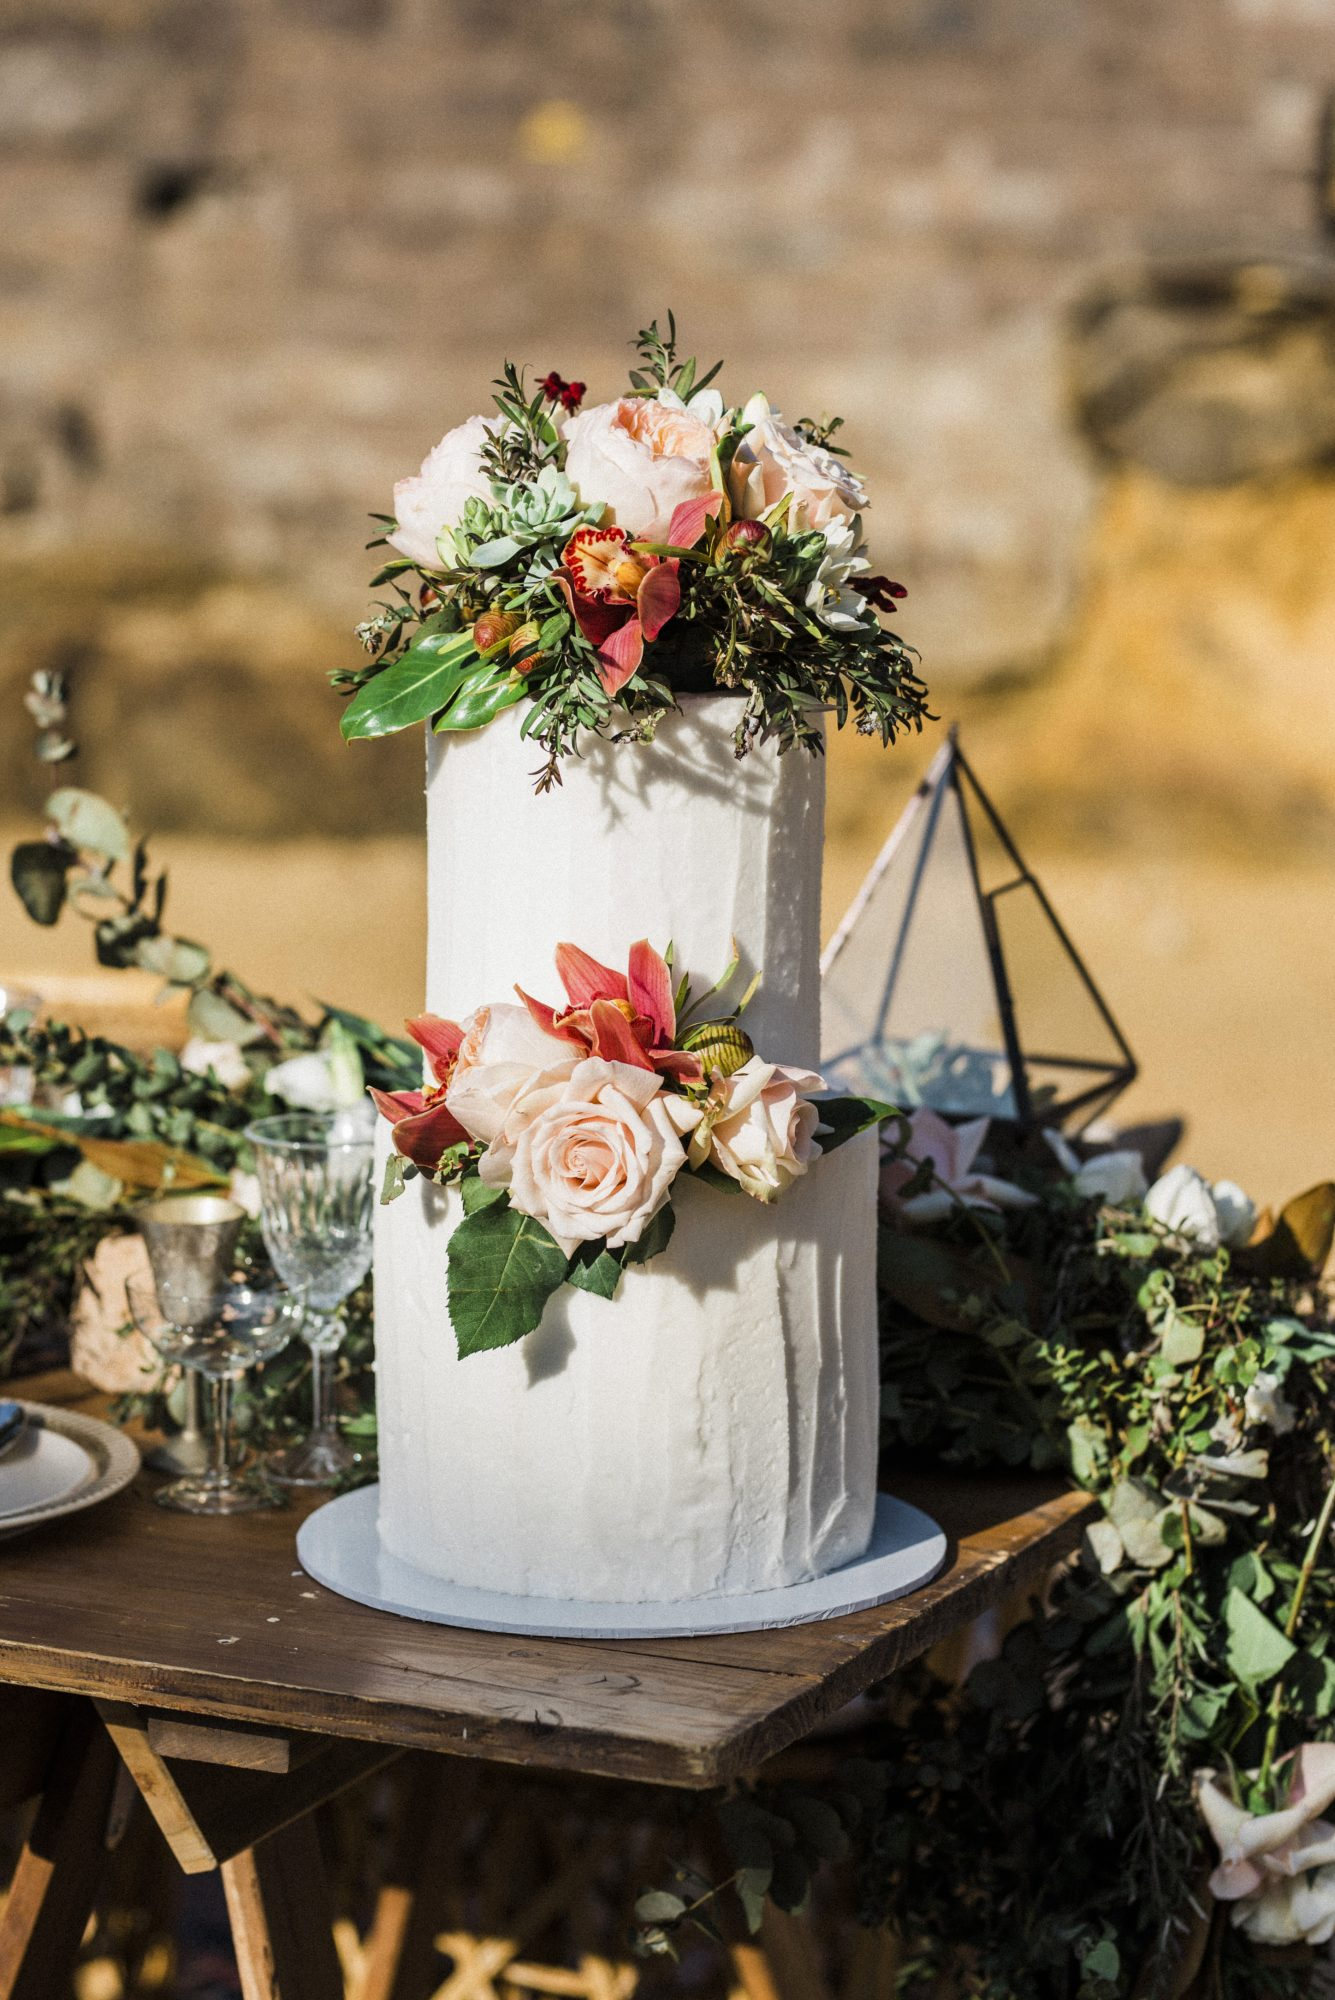 floral wedding cakes amy nelson